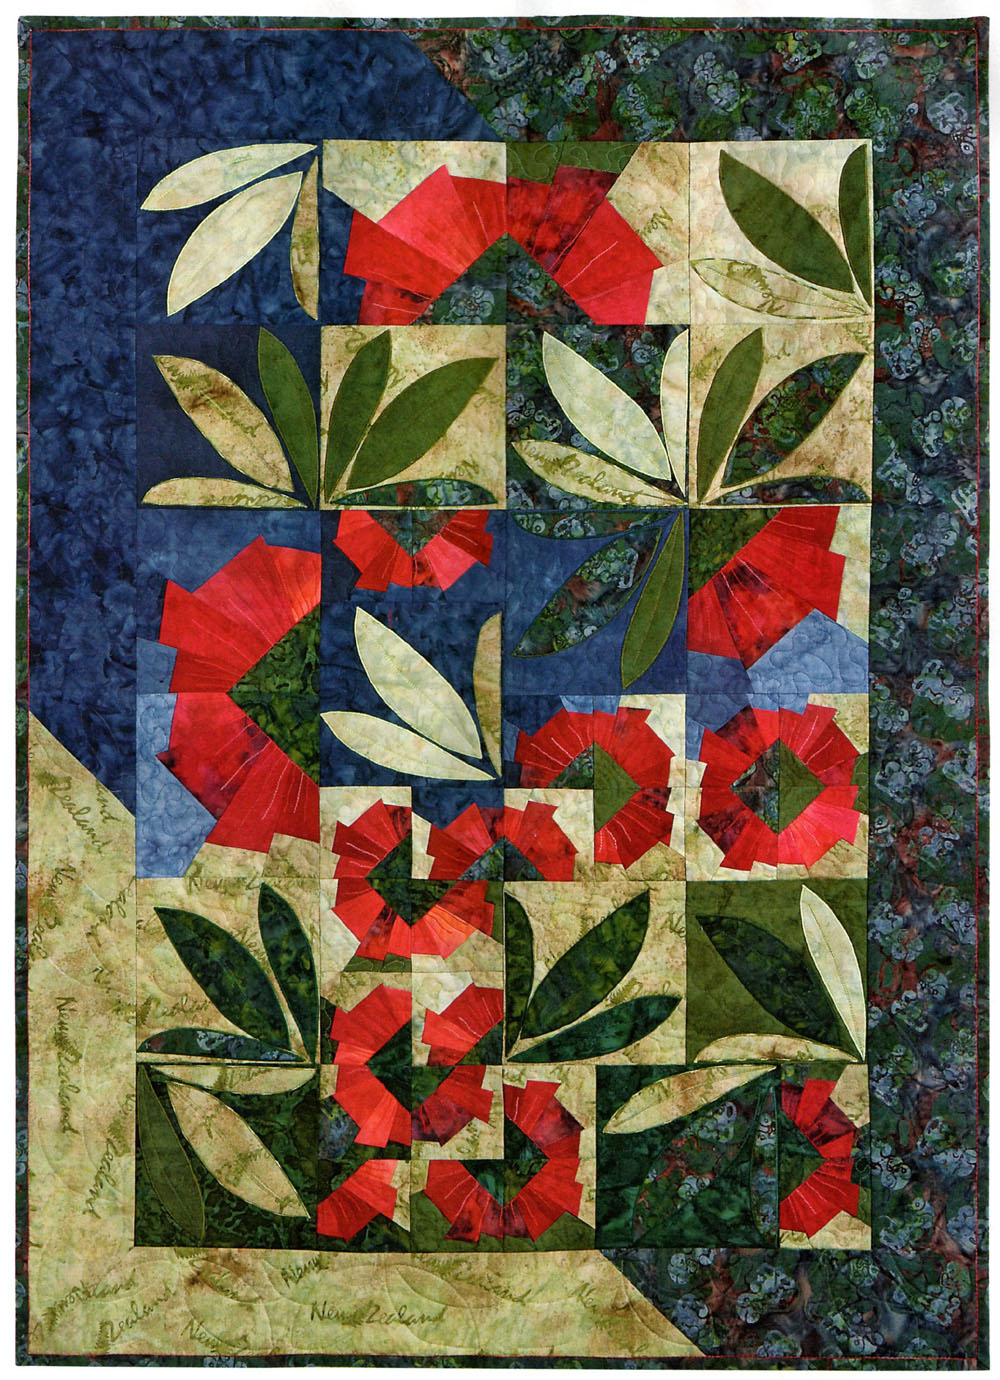 Quilt Inspiration: Christmas around the world: New Zealand